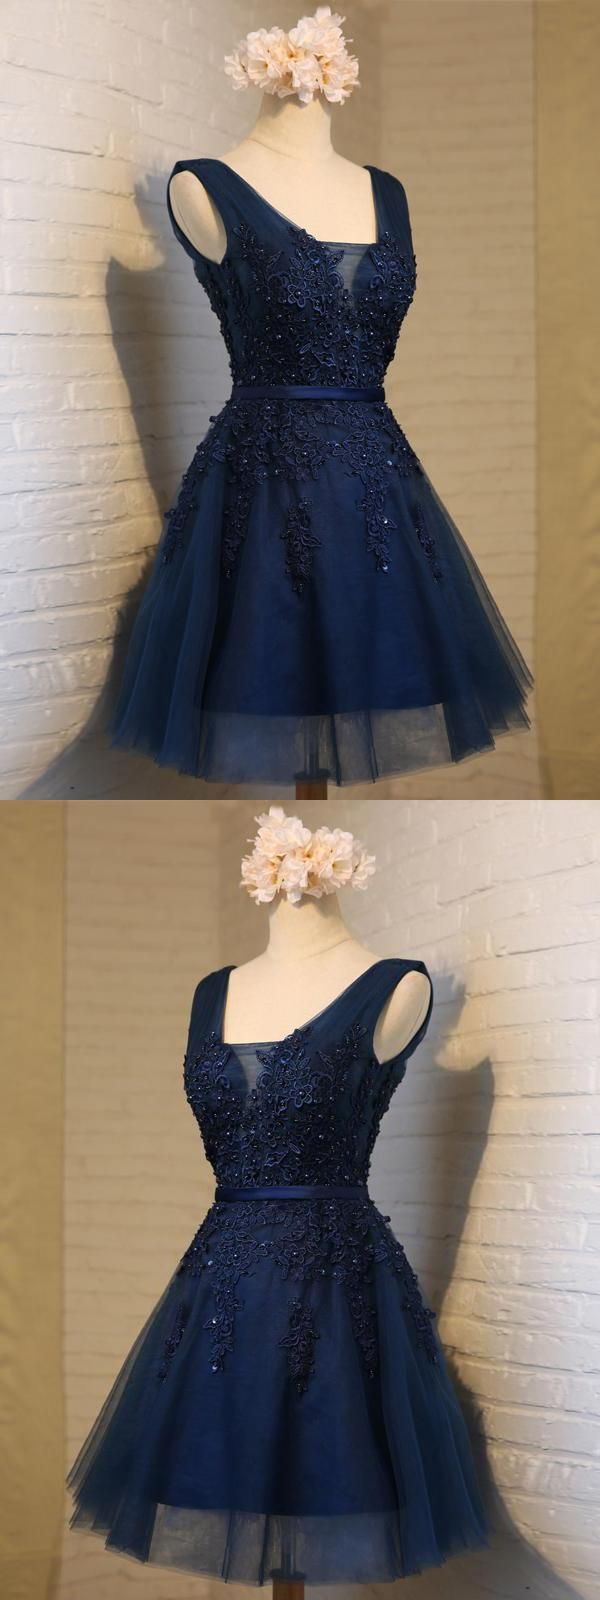 Navy blue prom dresses vneck homecoming dresses homecoming